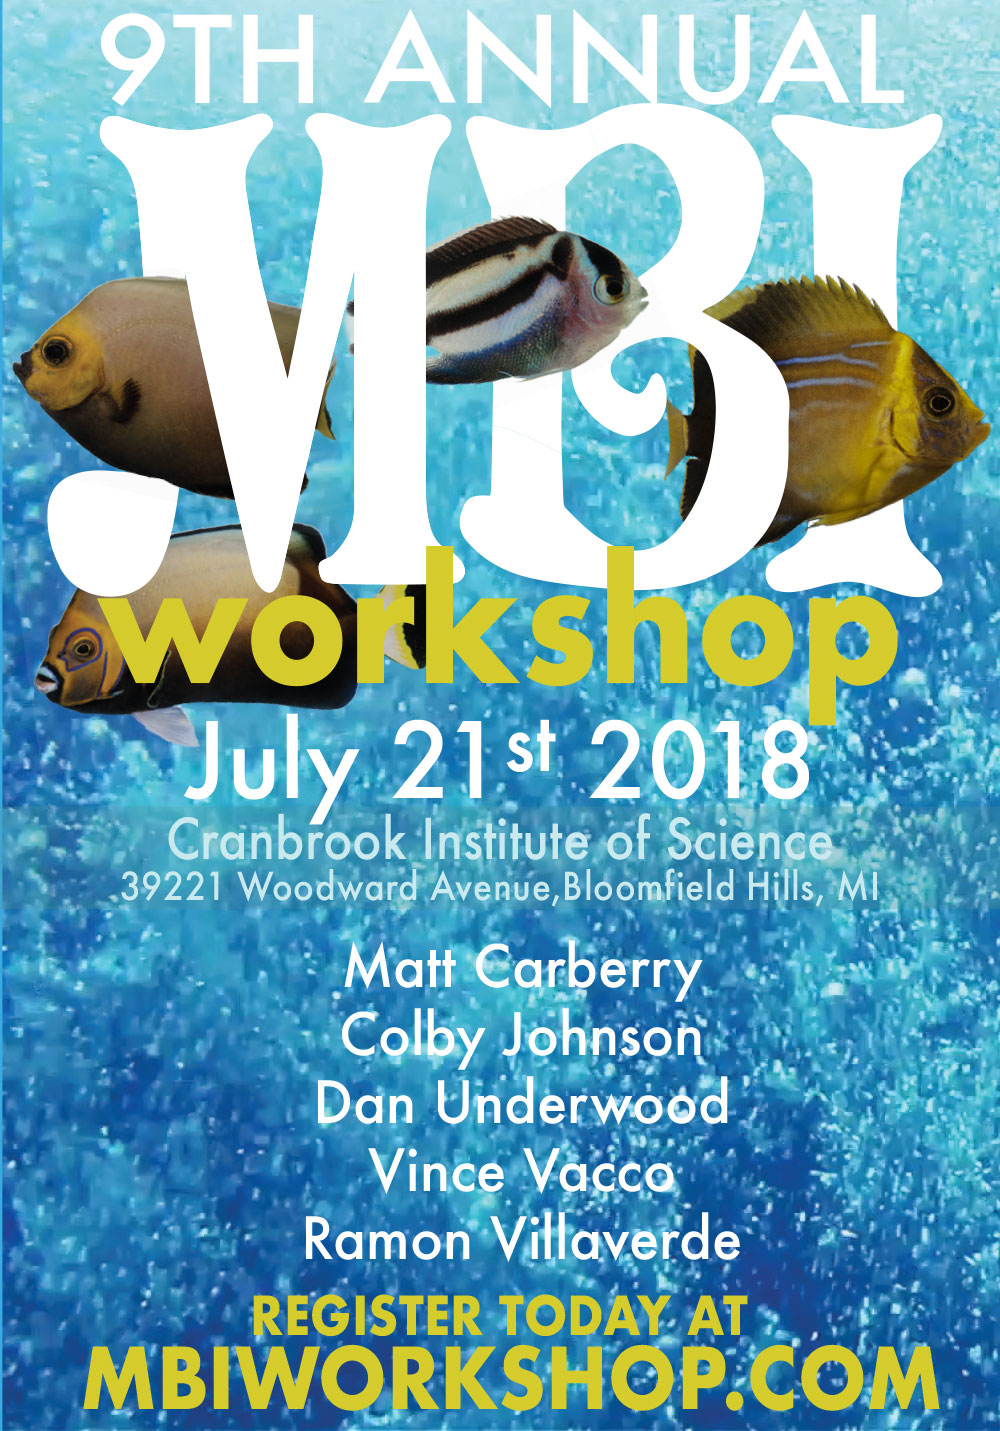 The 9th annual MBI Workshop will once again bring marine aquaculture specialists, aquarium professionals, and saltwater fish breeding hobbyists together from around the continent each year in Bloomfield Hills, Michigan.